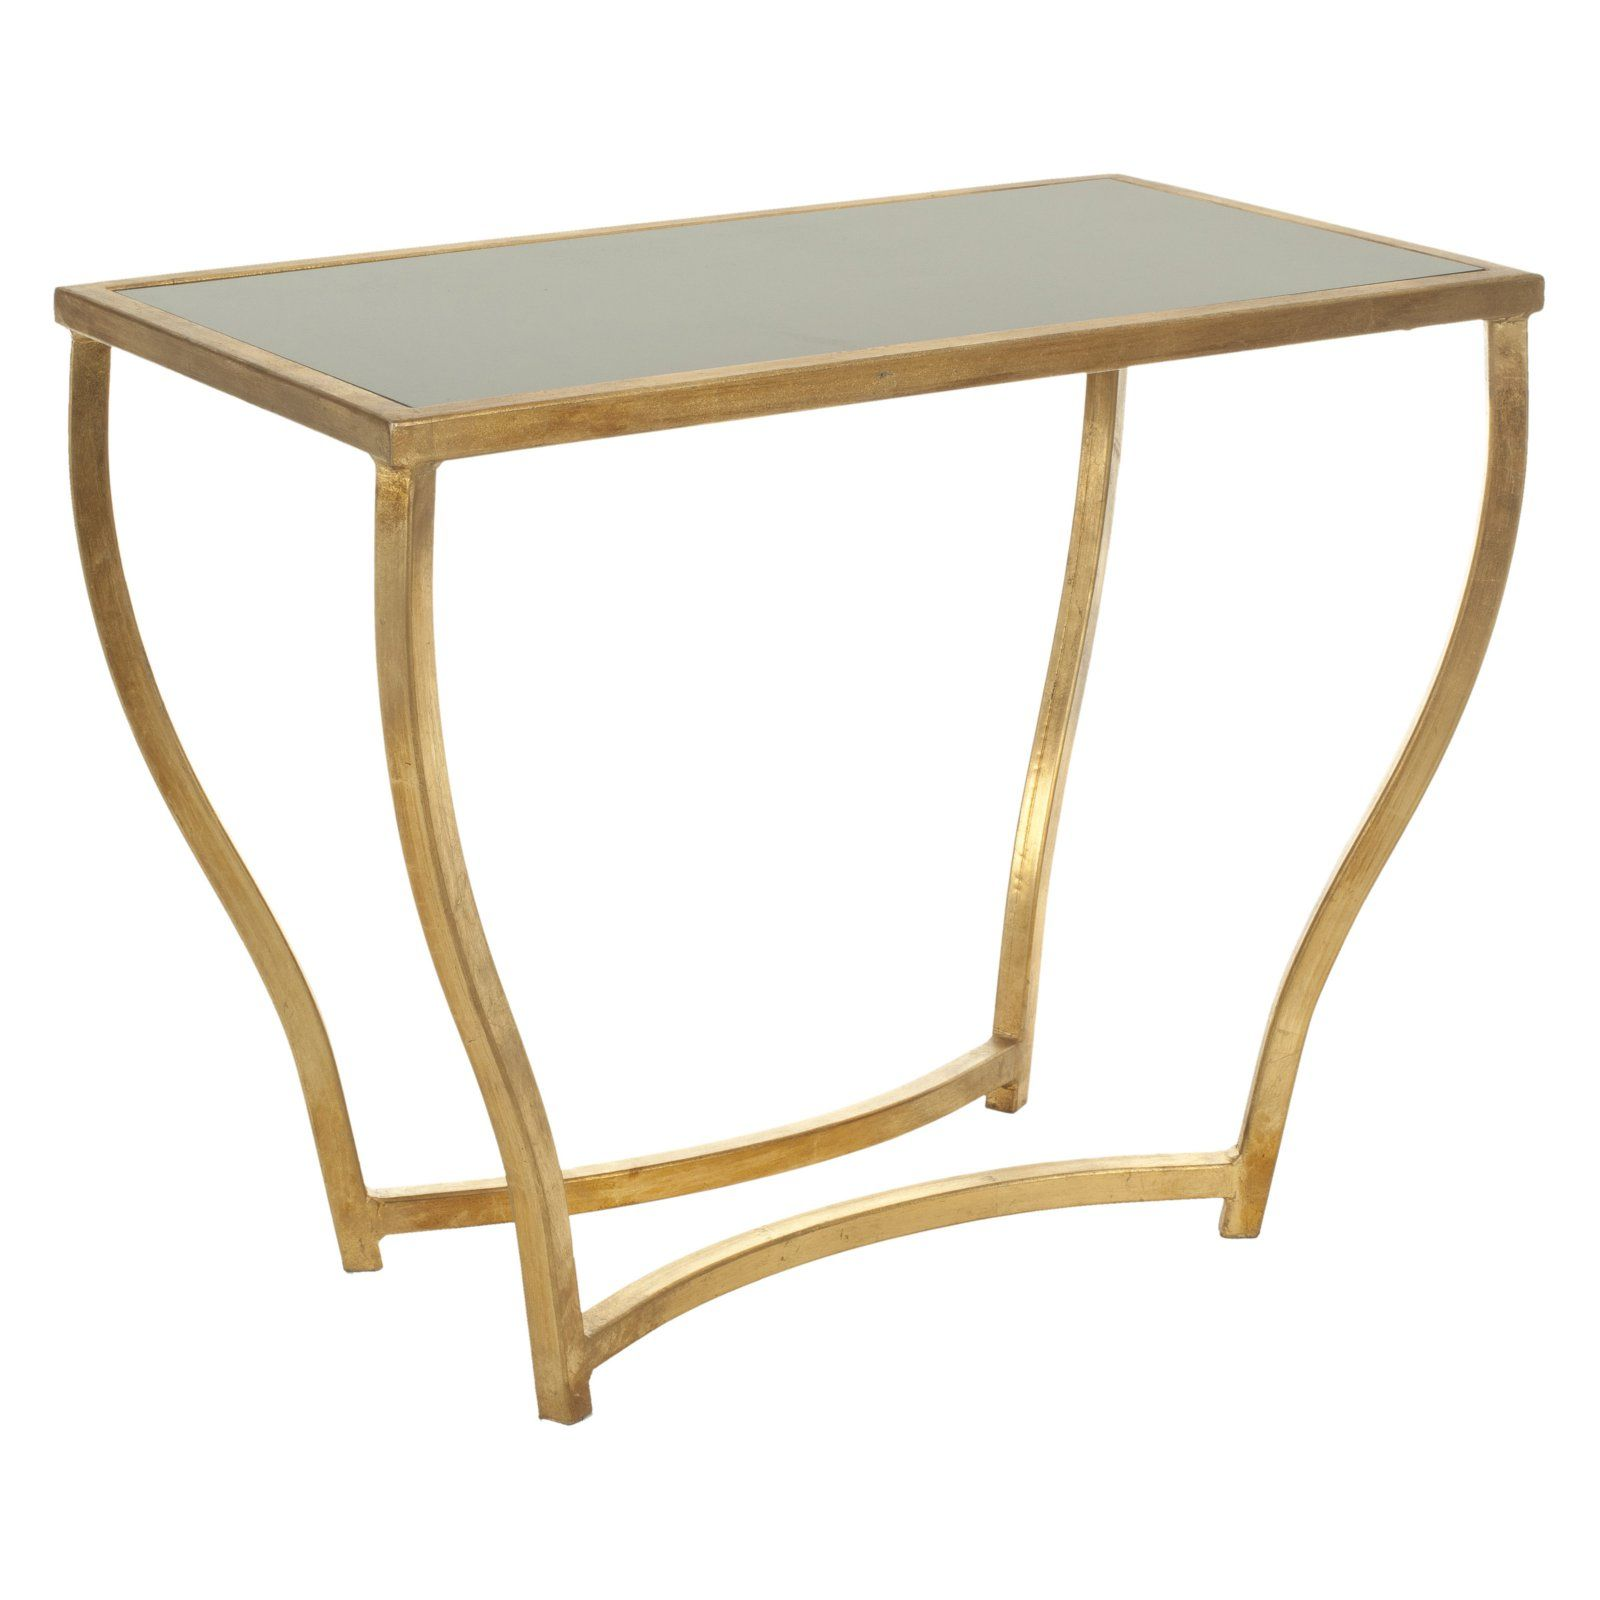 Accent Rex Meubles Safavieh Rex Glass Top Gold Foil Accent Table Black And Gold In